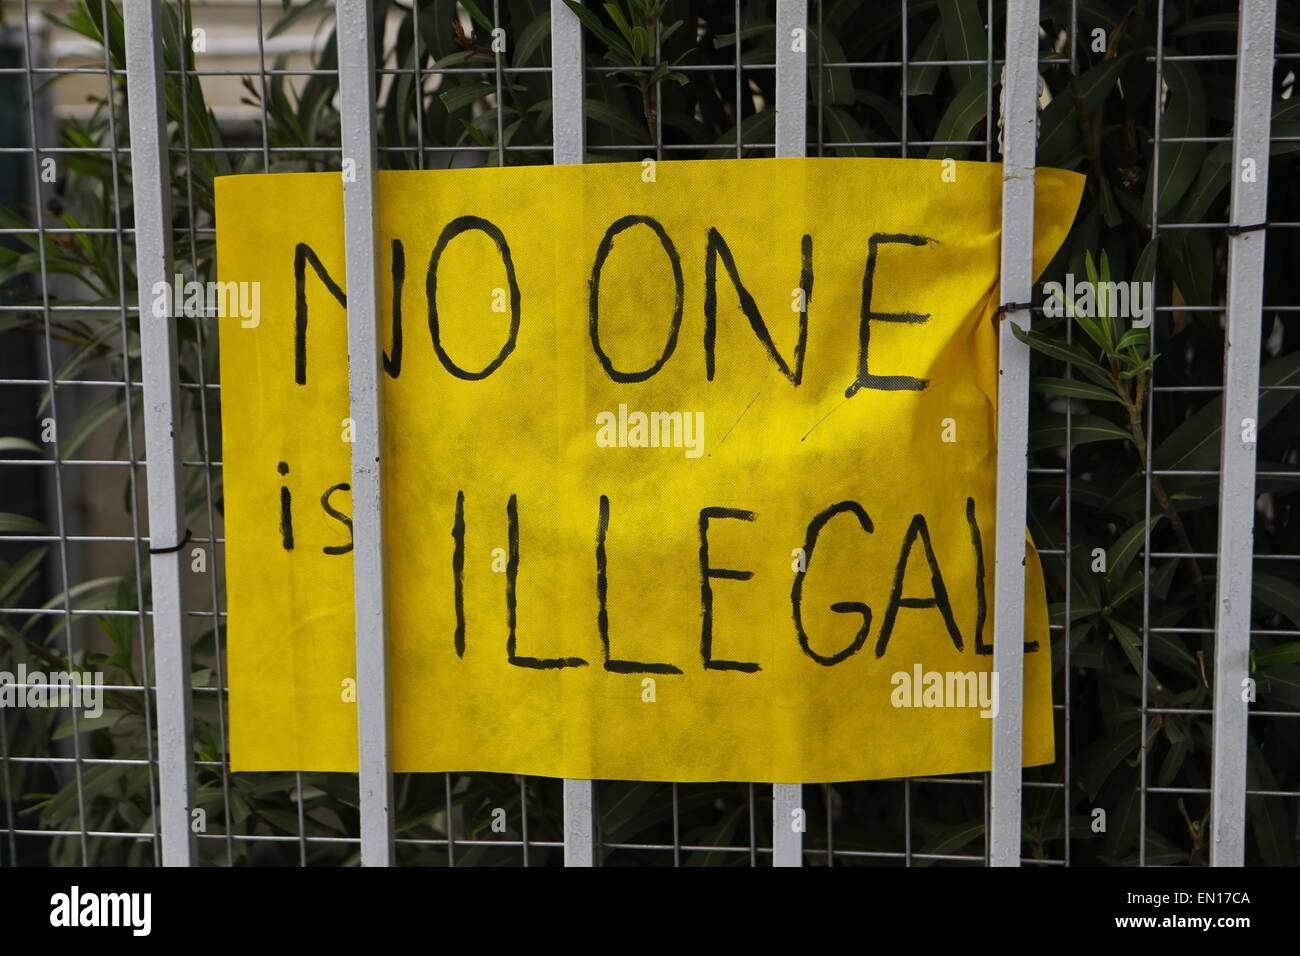 Athens, Greece. 25th Apr, 2015. A sign that reads 'No one is illegal' hangs on the fence of the Ministry. - Stock Image